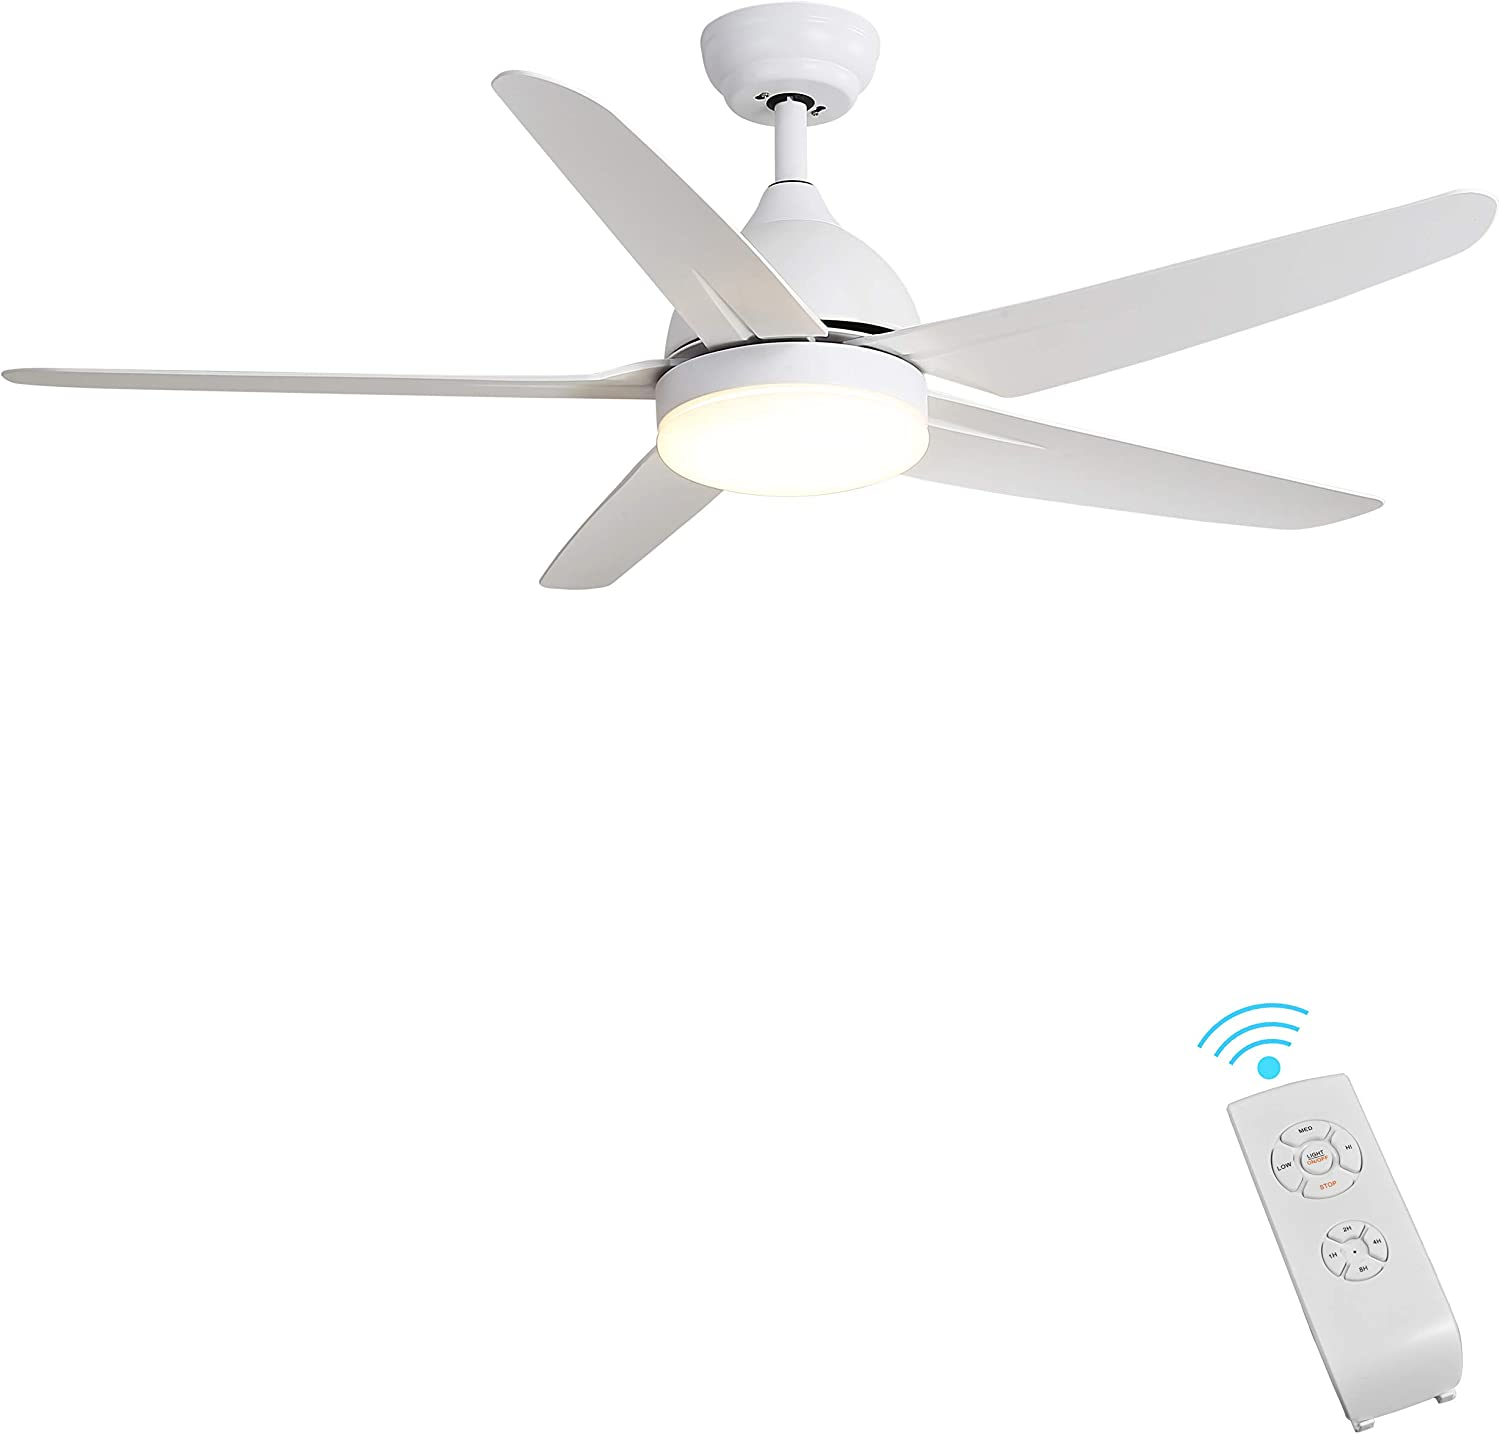 Indoor Ceiling Fan Light Fixtures Finxin White Remote Led 52 Ceiling Fans For Bedroom Living Room Dining Room Including Motor 5 Blades Remote Switch 5 Blades Amazon Com